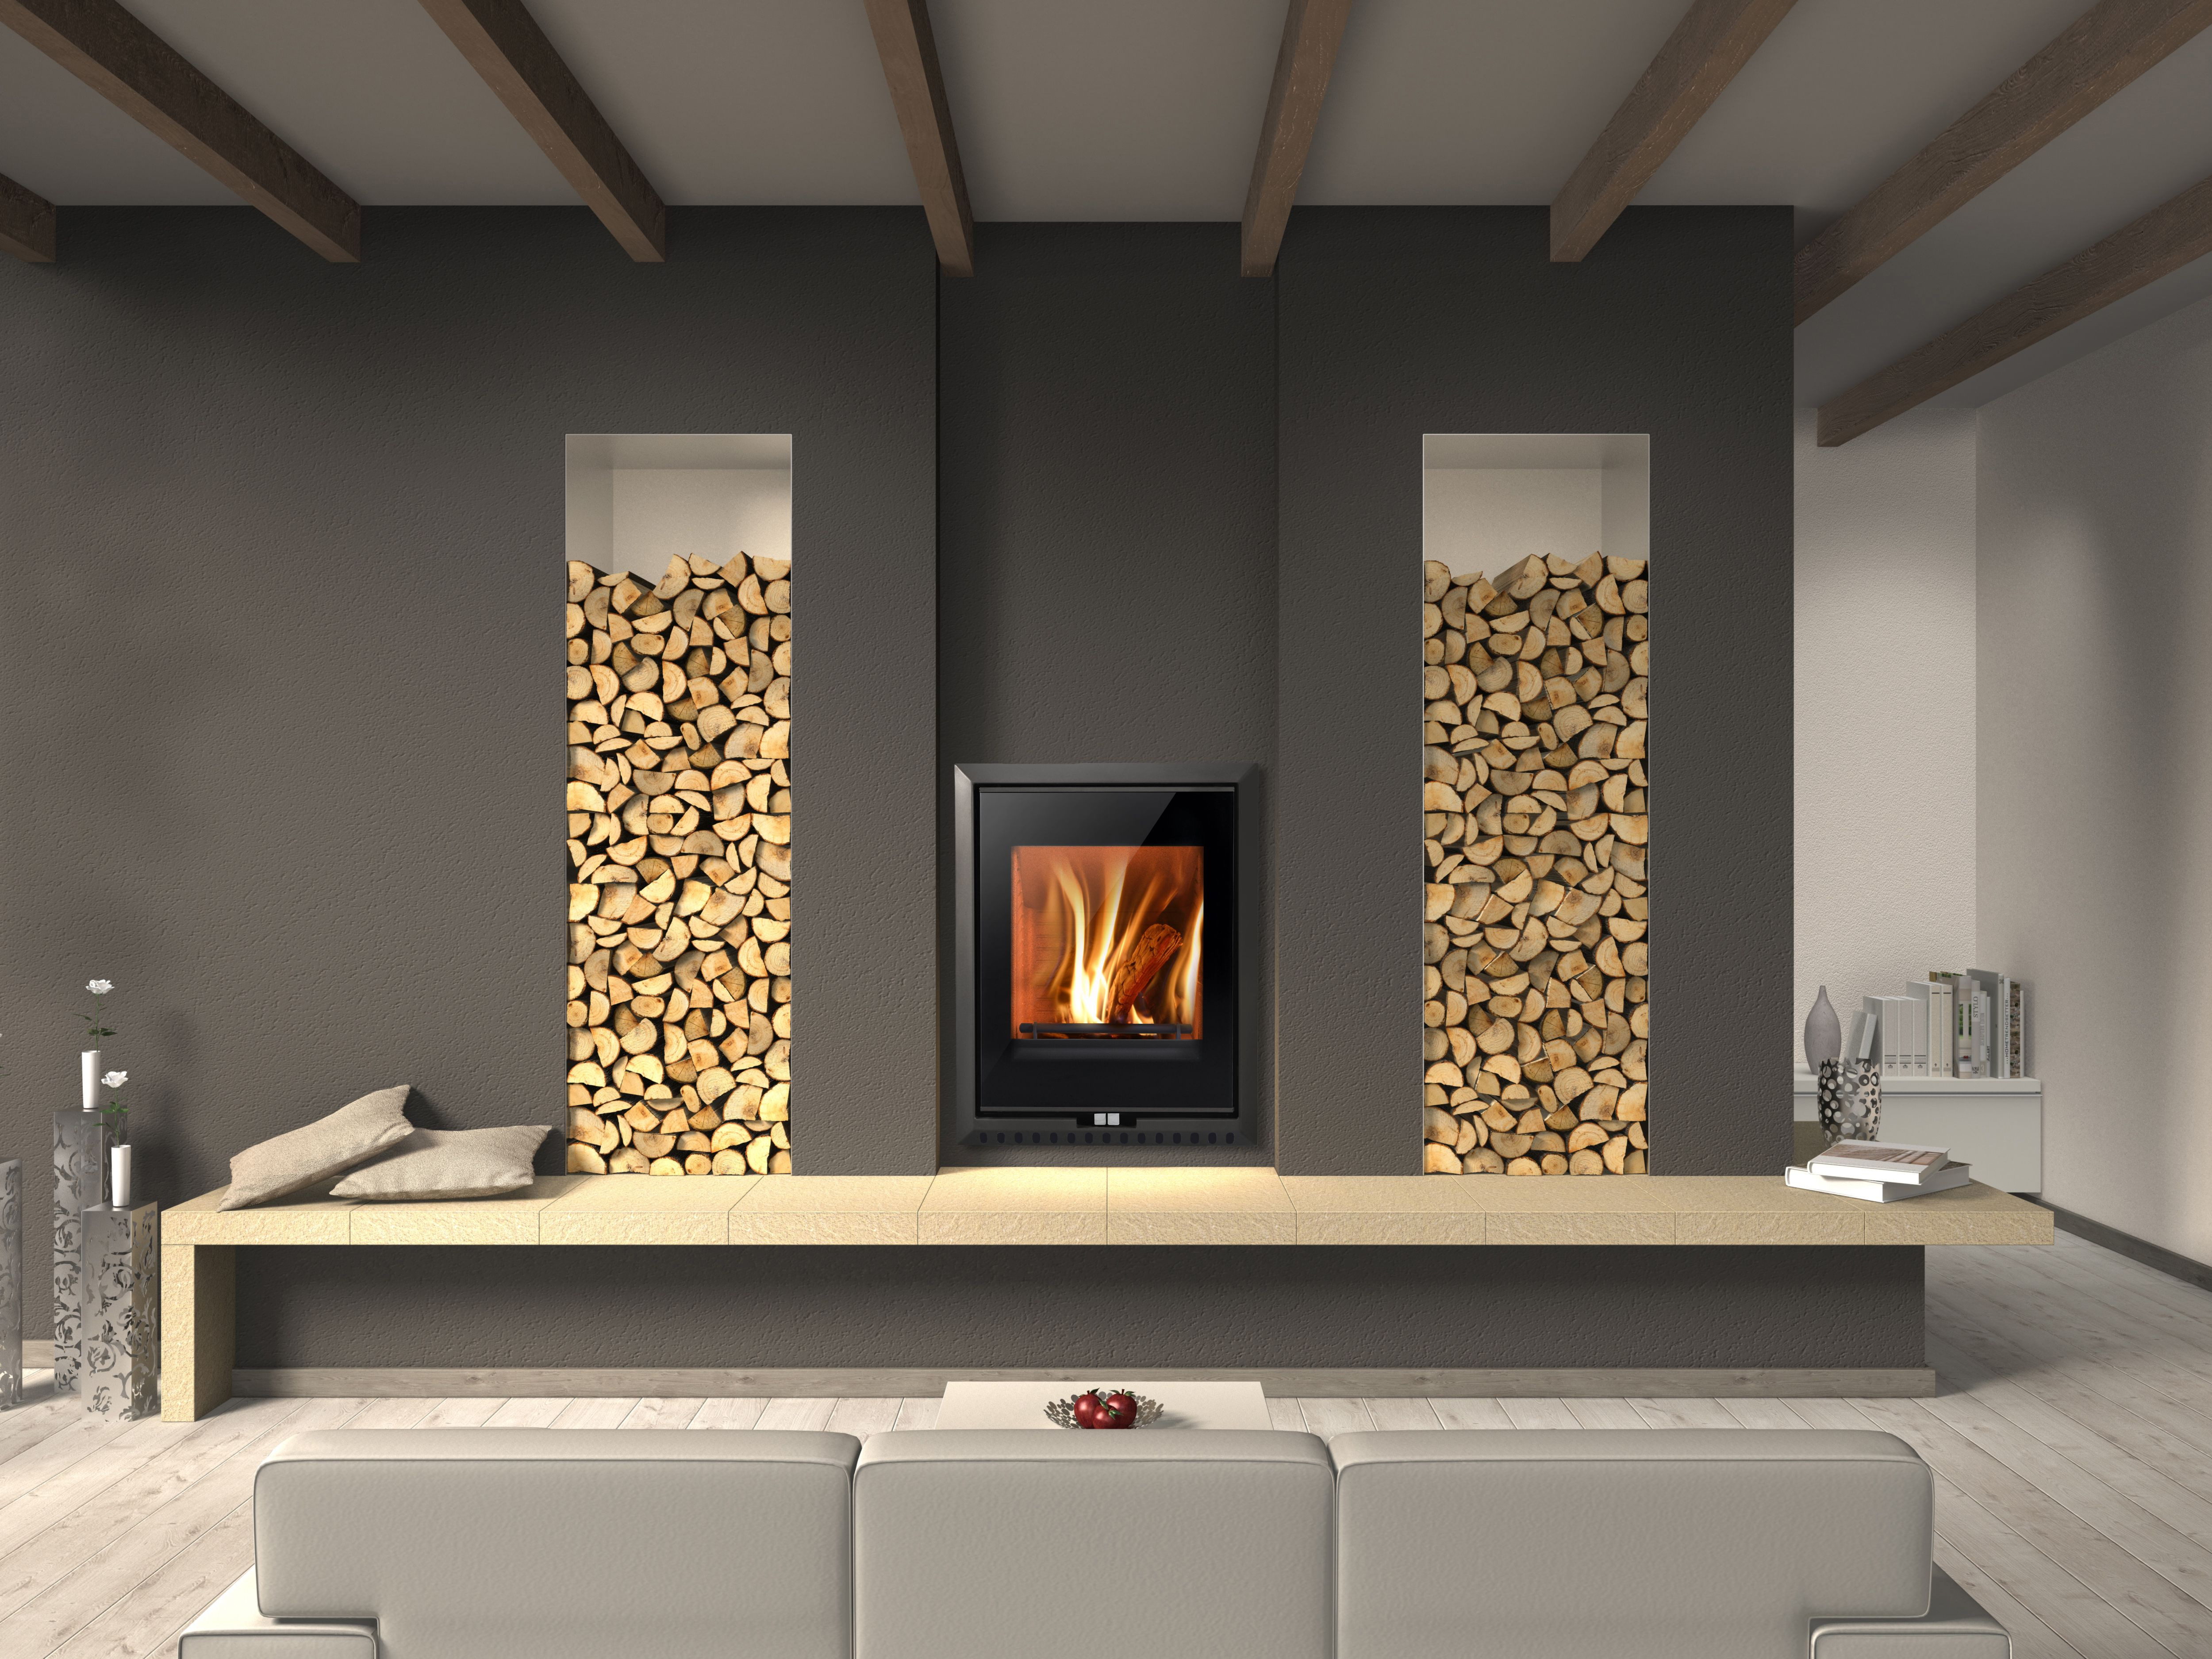 Looking for Euro Fireplaces in Newcastle? Look no further and call  Quinlan's Heating & B. Centre now on 02 4969